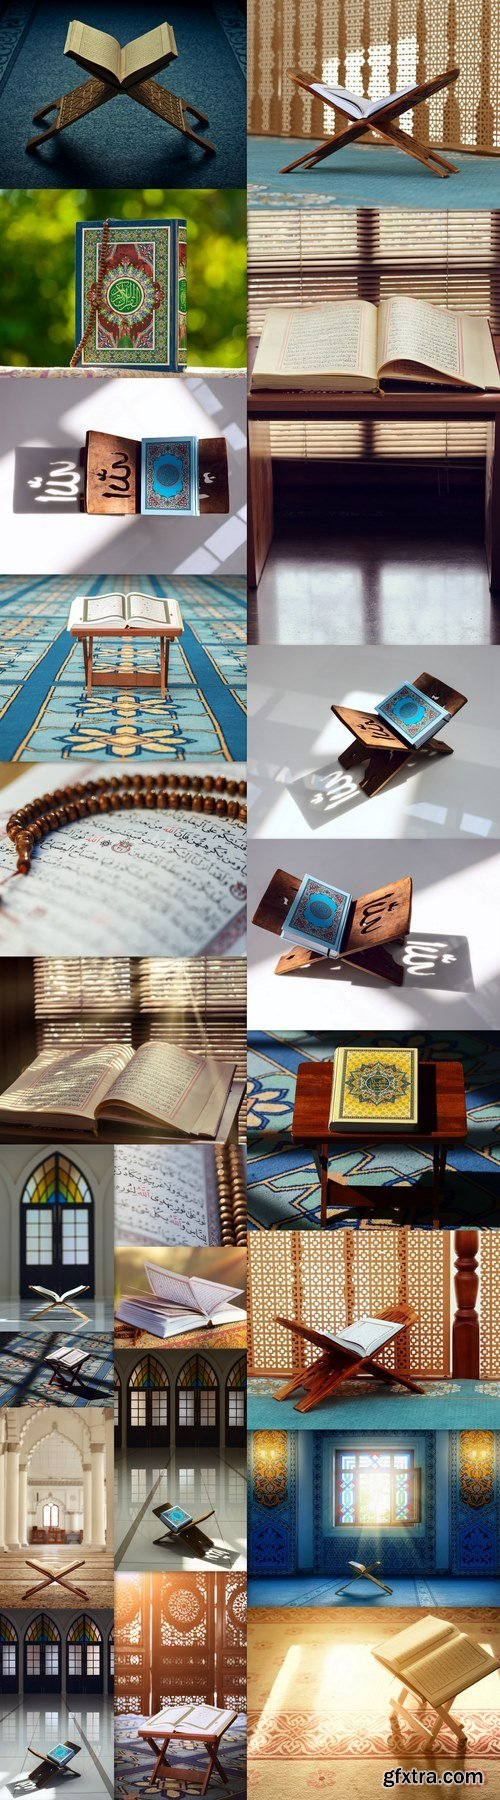 Quran - holy book of Islam